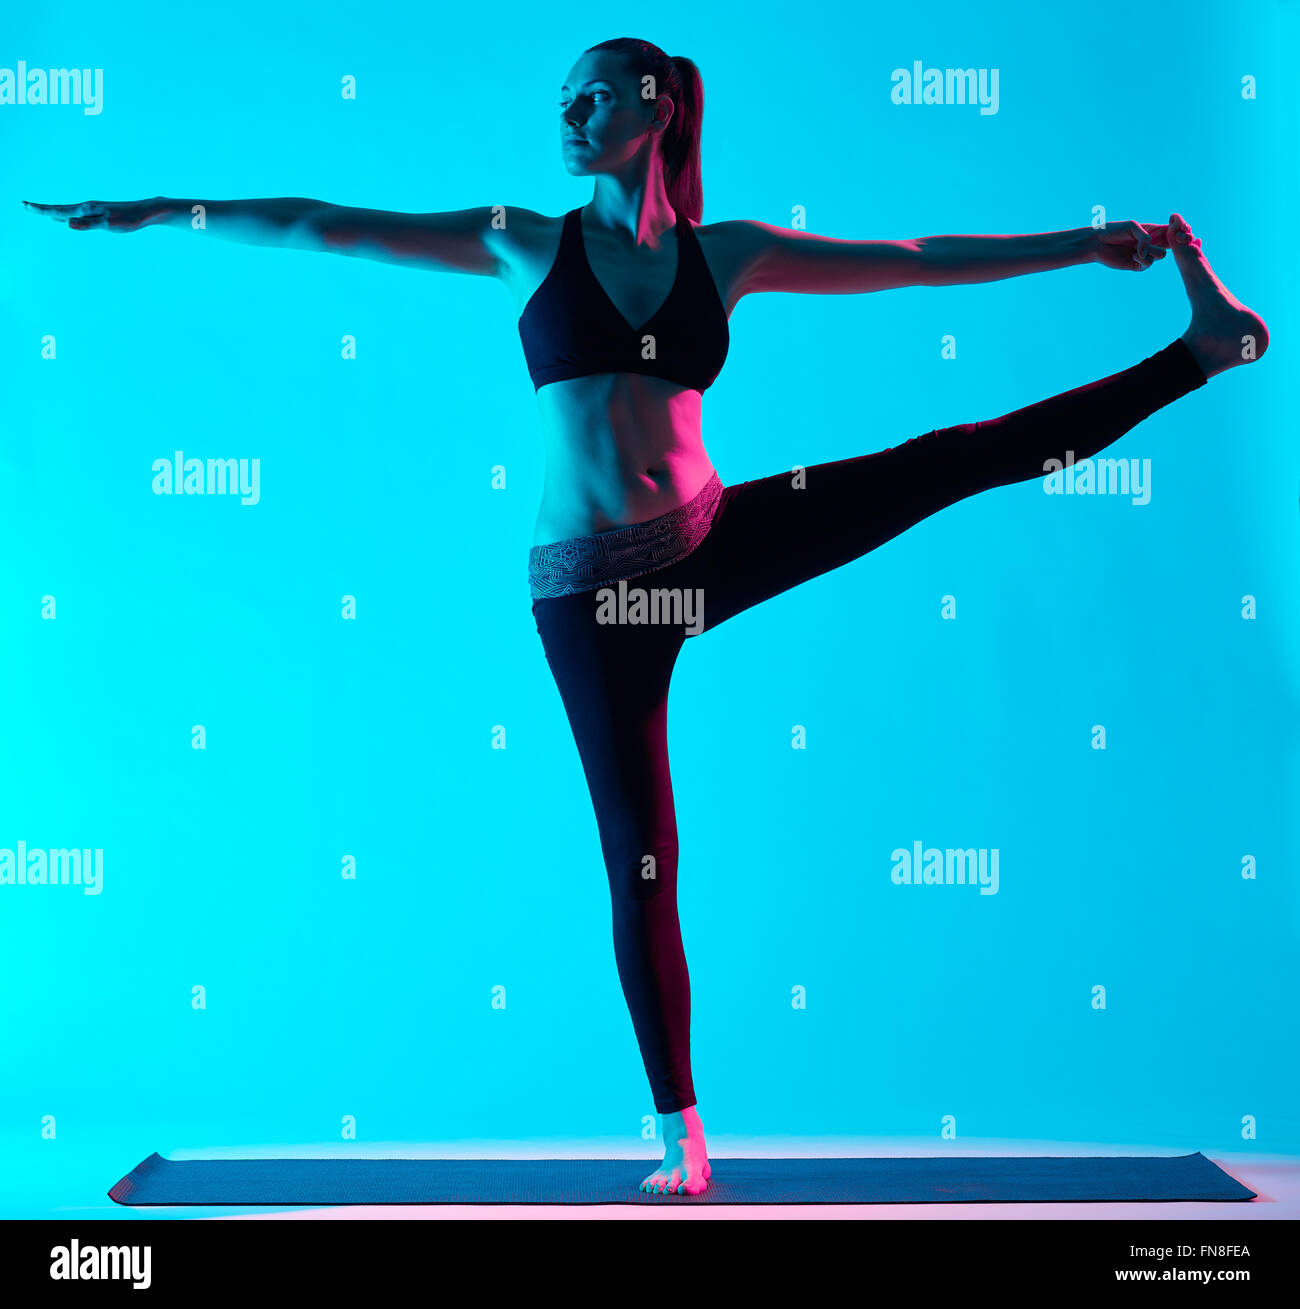 one caucasian woman exercising Hasta Padangusthasana yoga exercices  in silhouette studio isolated on blue background - Stock Image